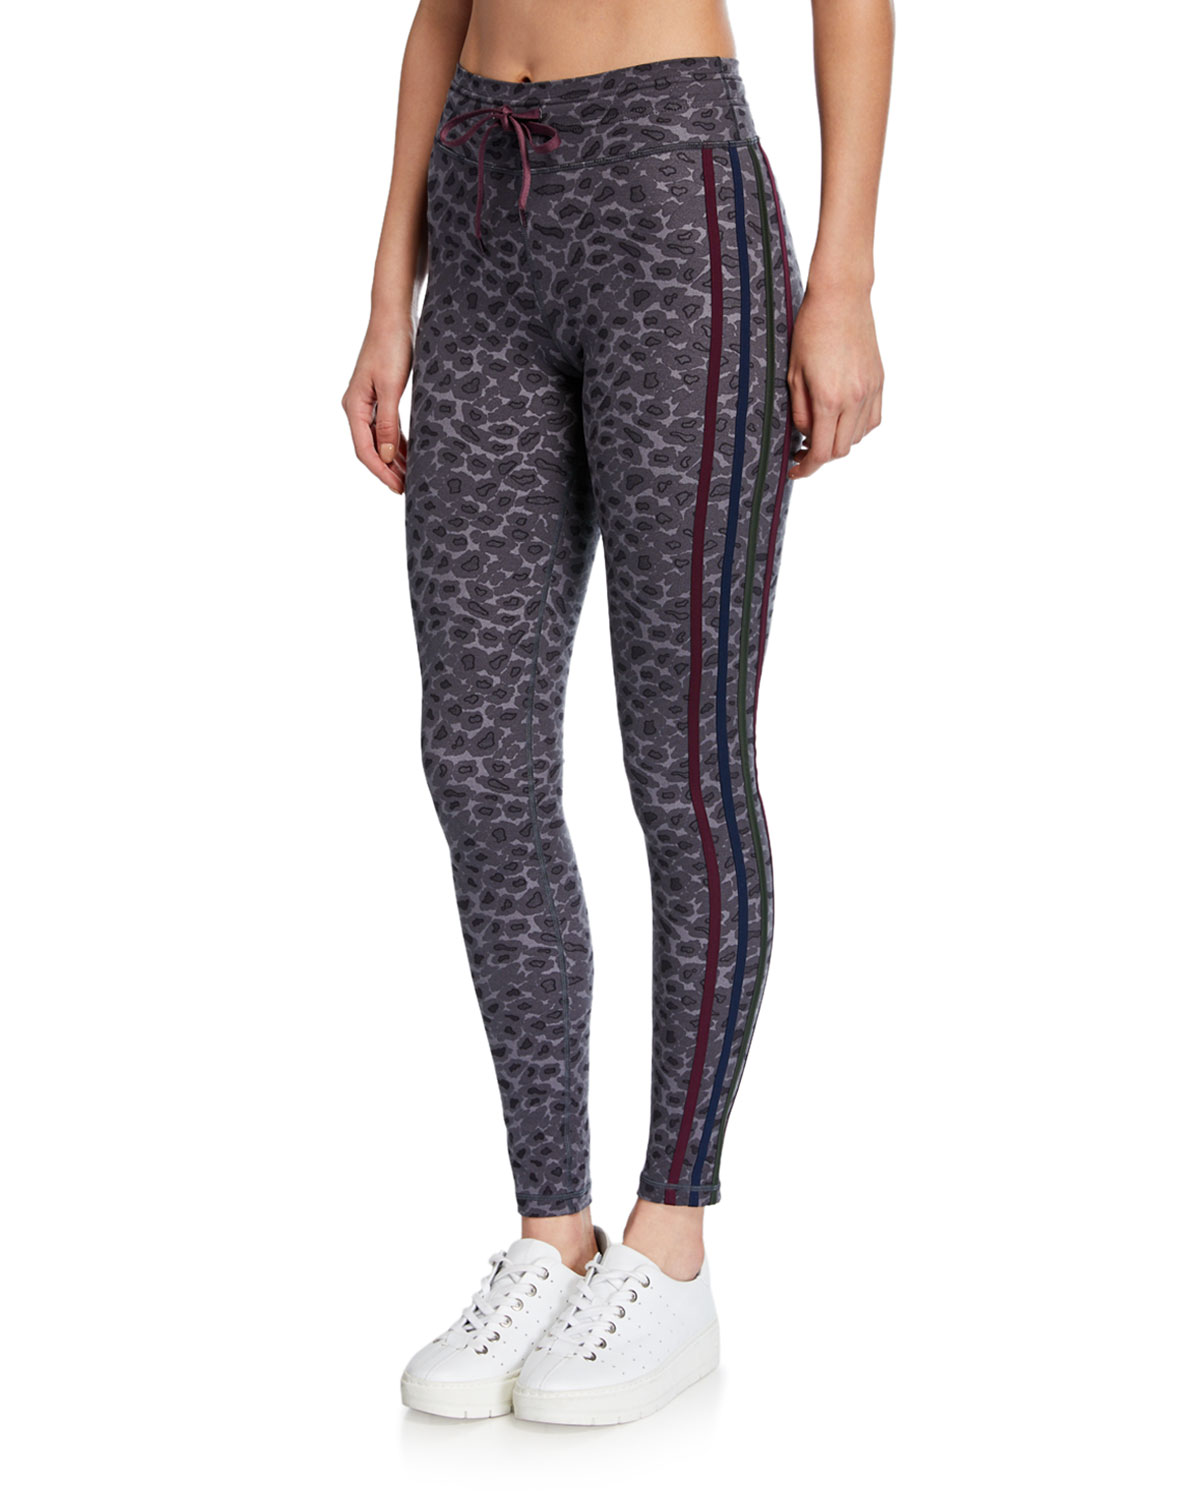 The Upside Snow Leopard Printed Yoga Pants